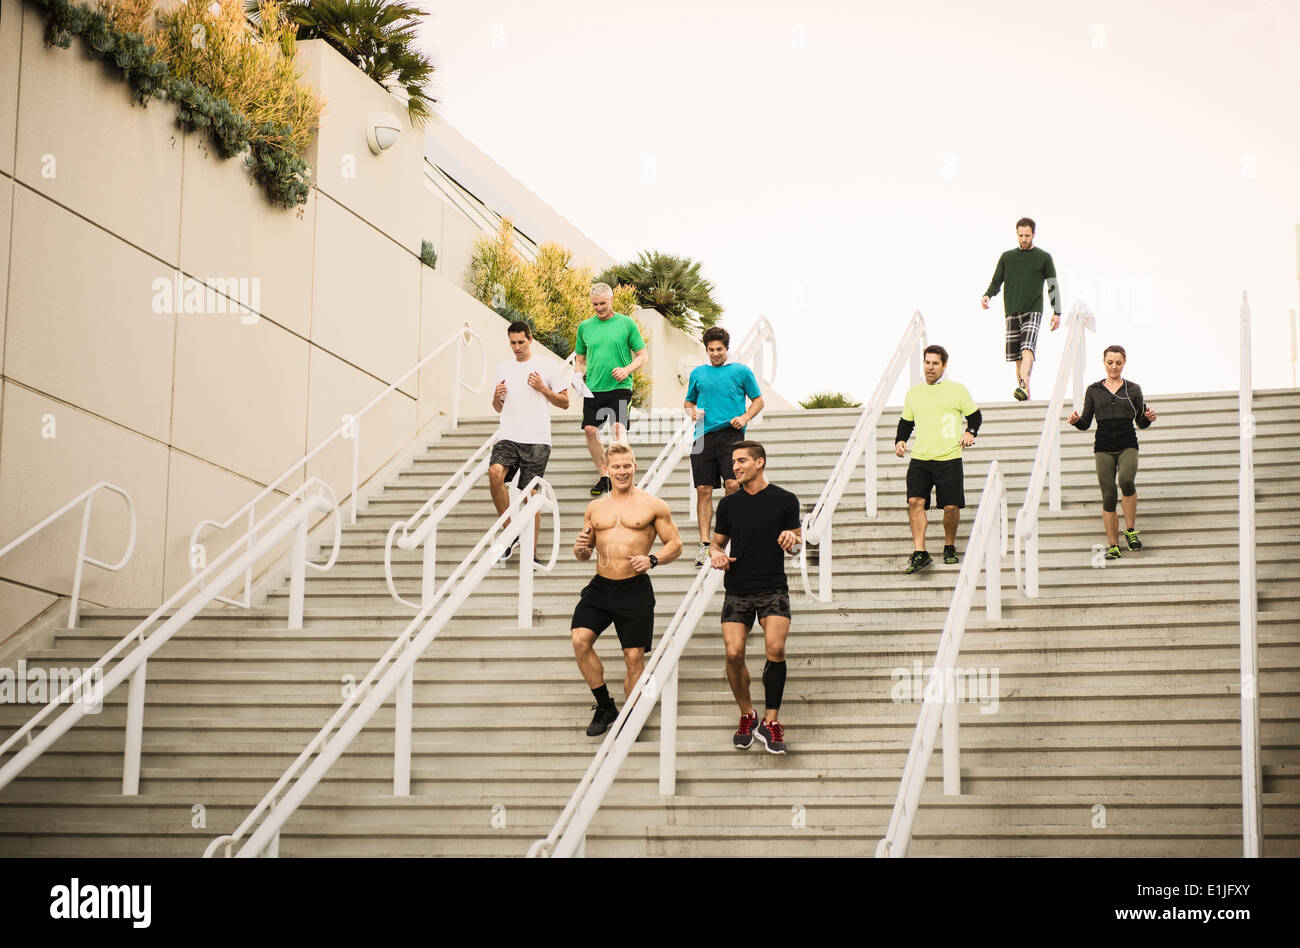 Small group of runners training on convention center stairs - Stock Image